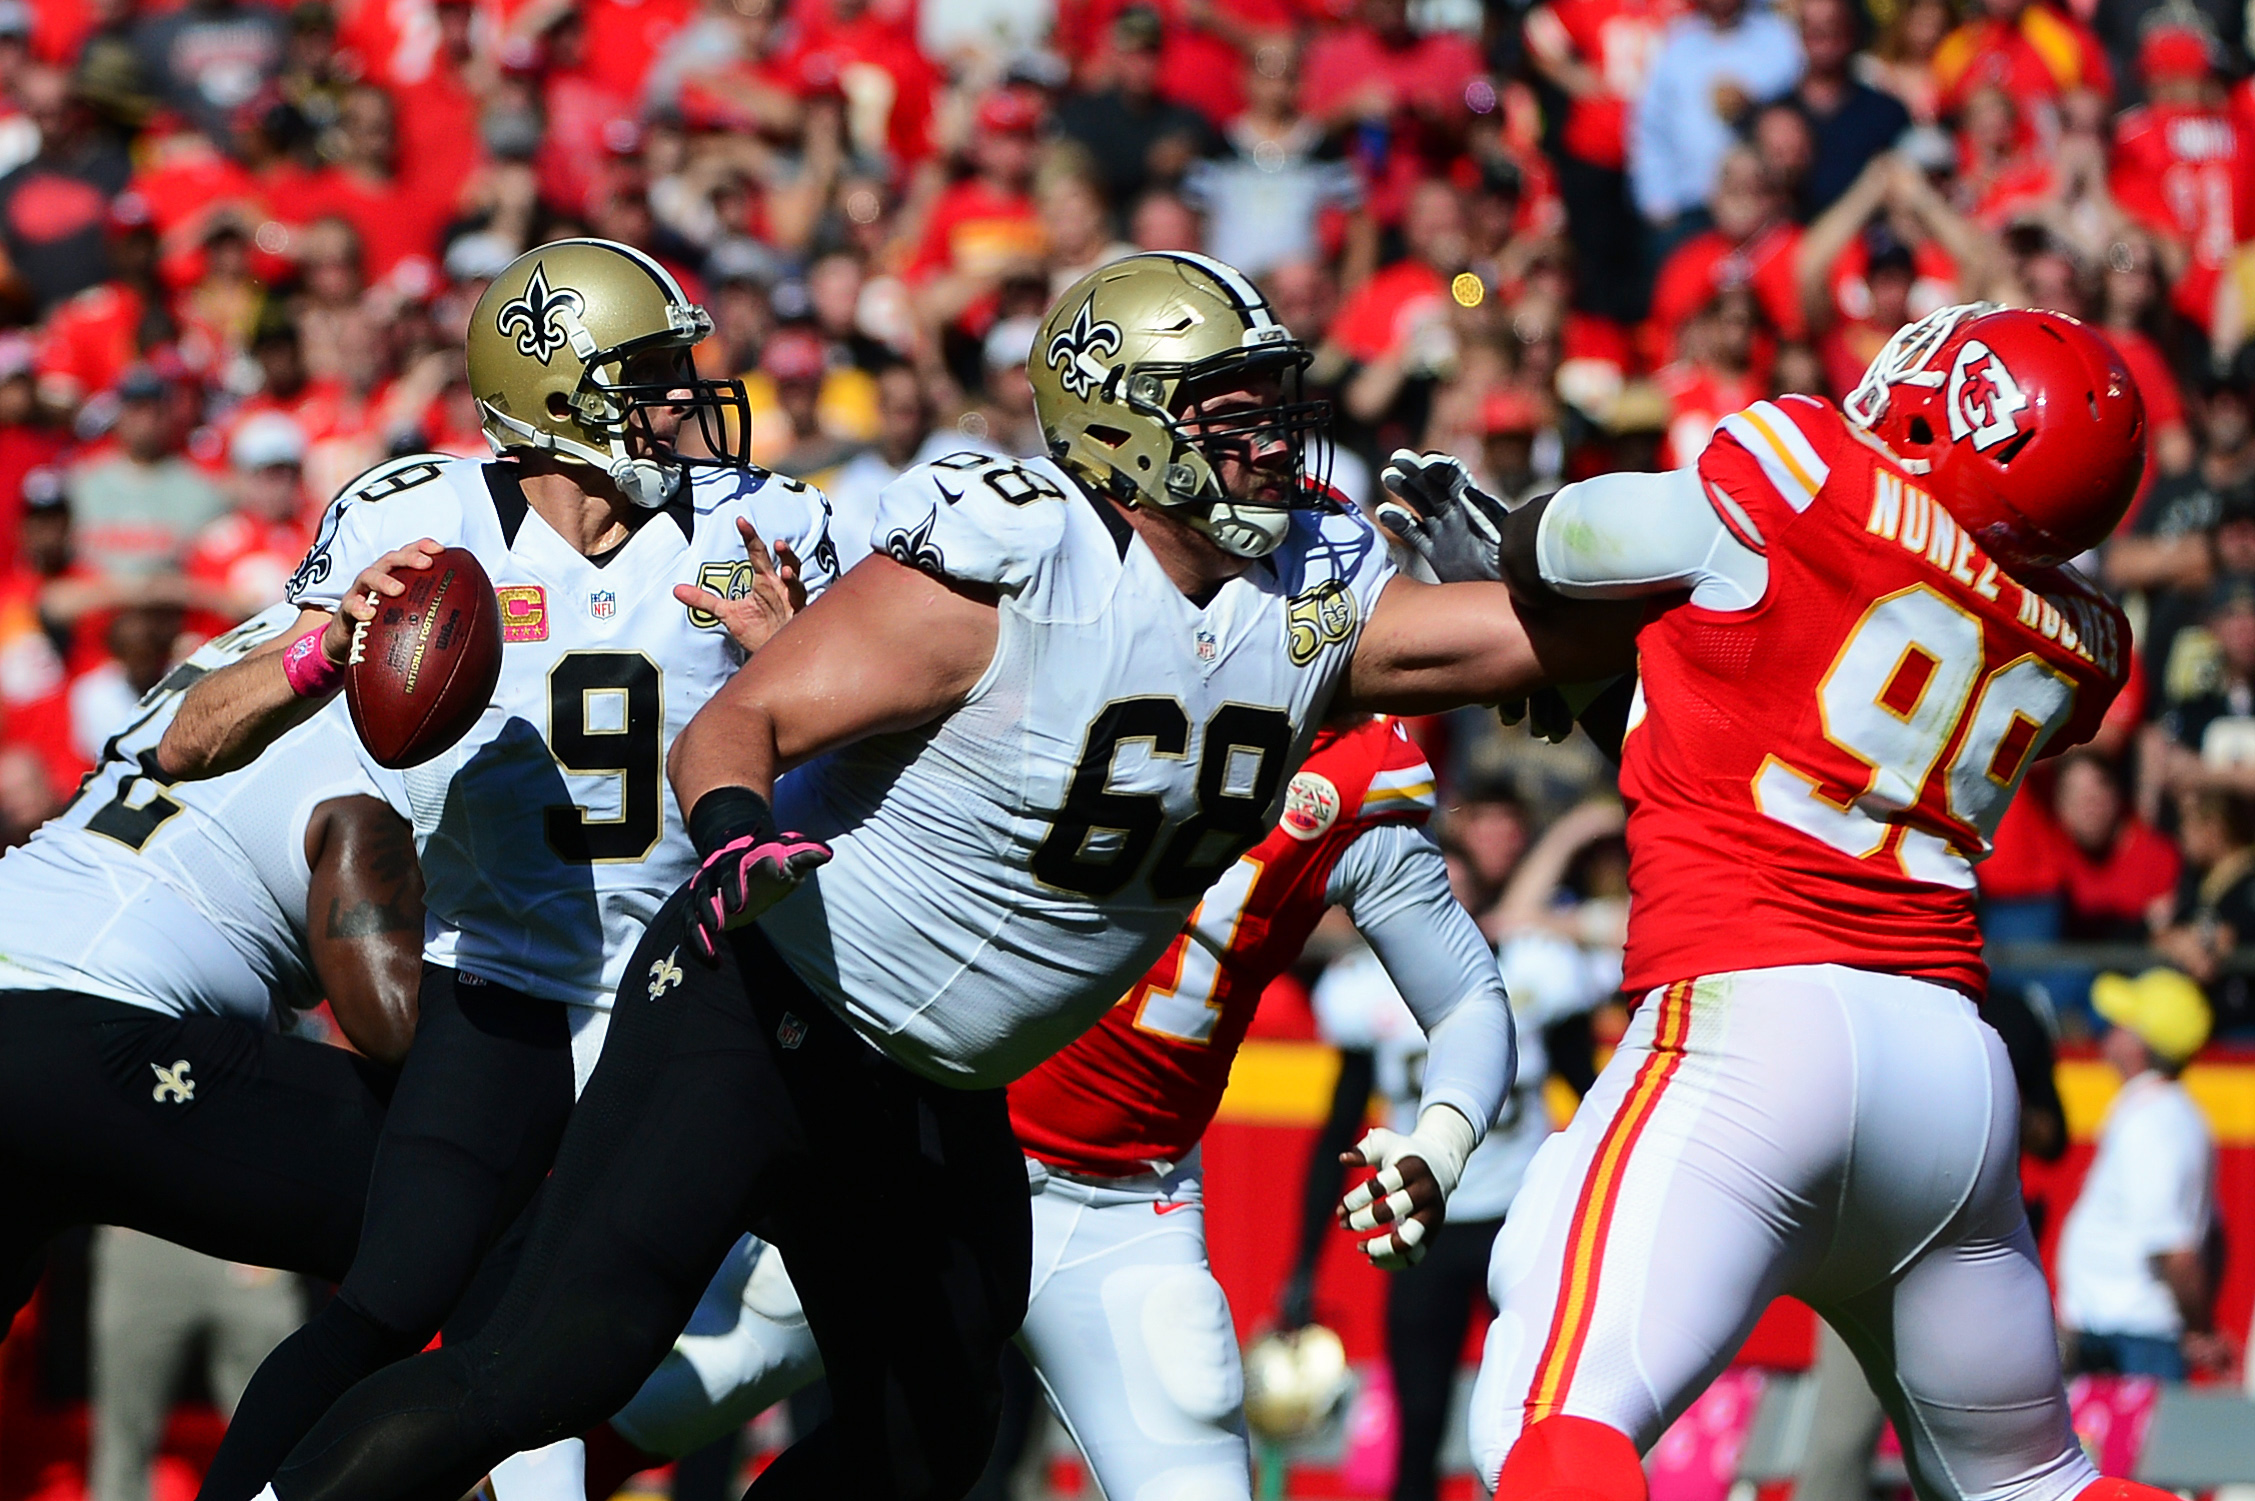 9628193-nfl-new-orleans-saints-at-kansas-city-chiefs